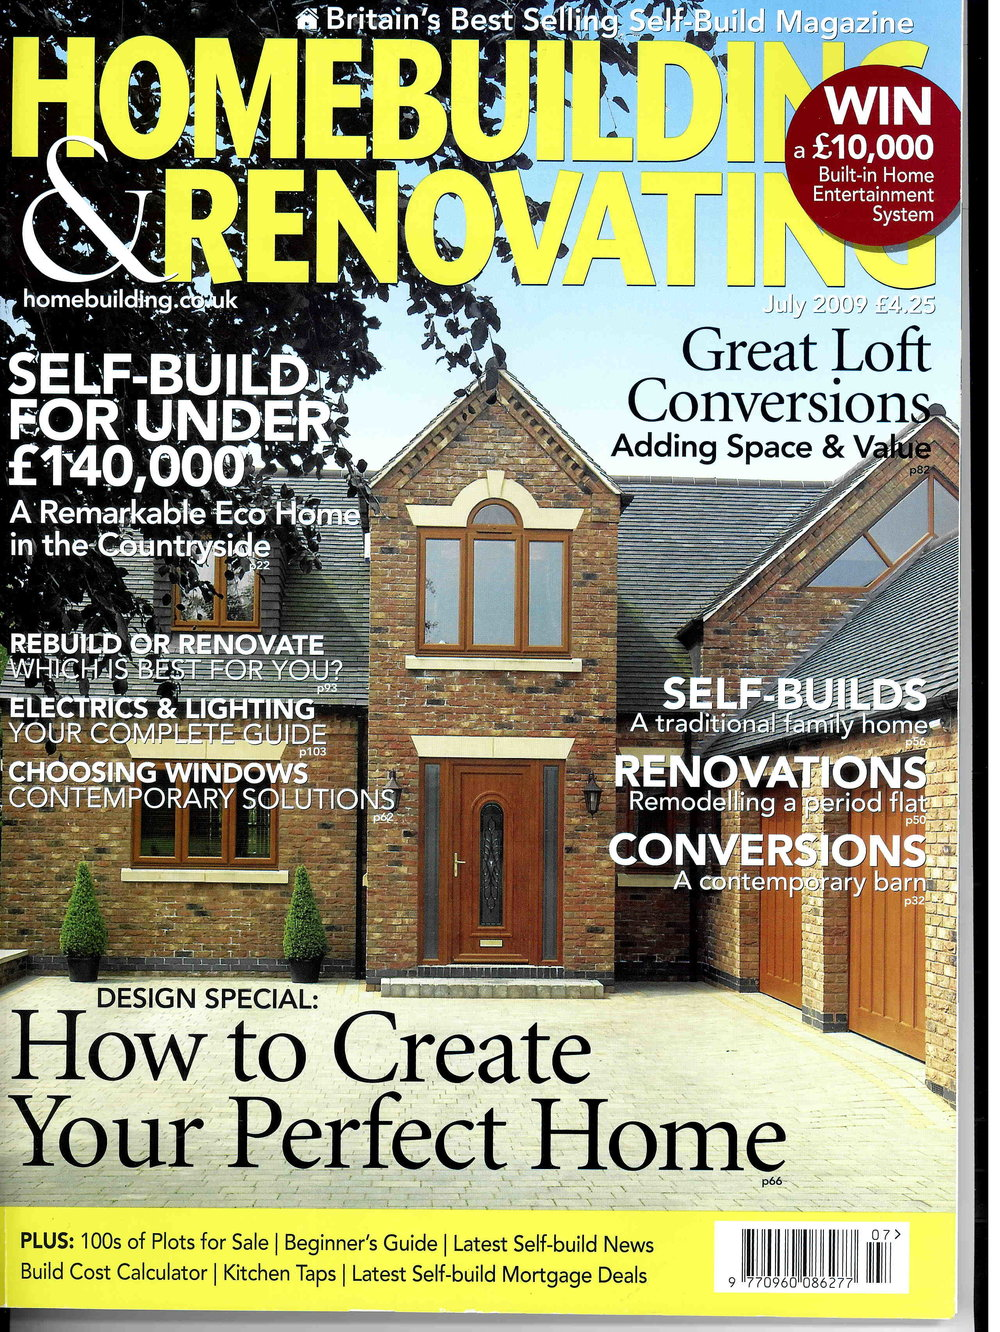 Homebuilding & Renovating, 2009